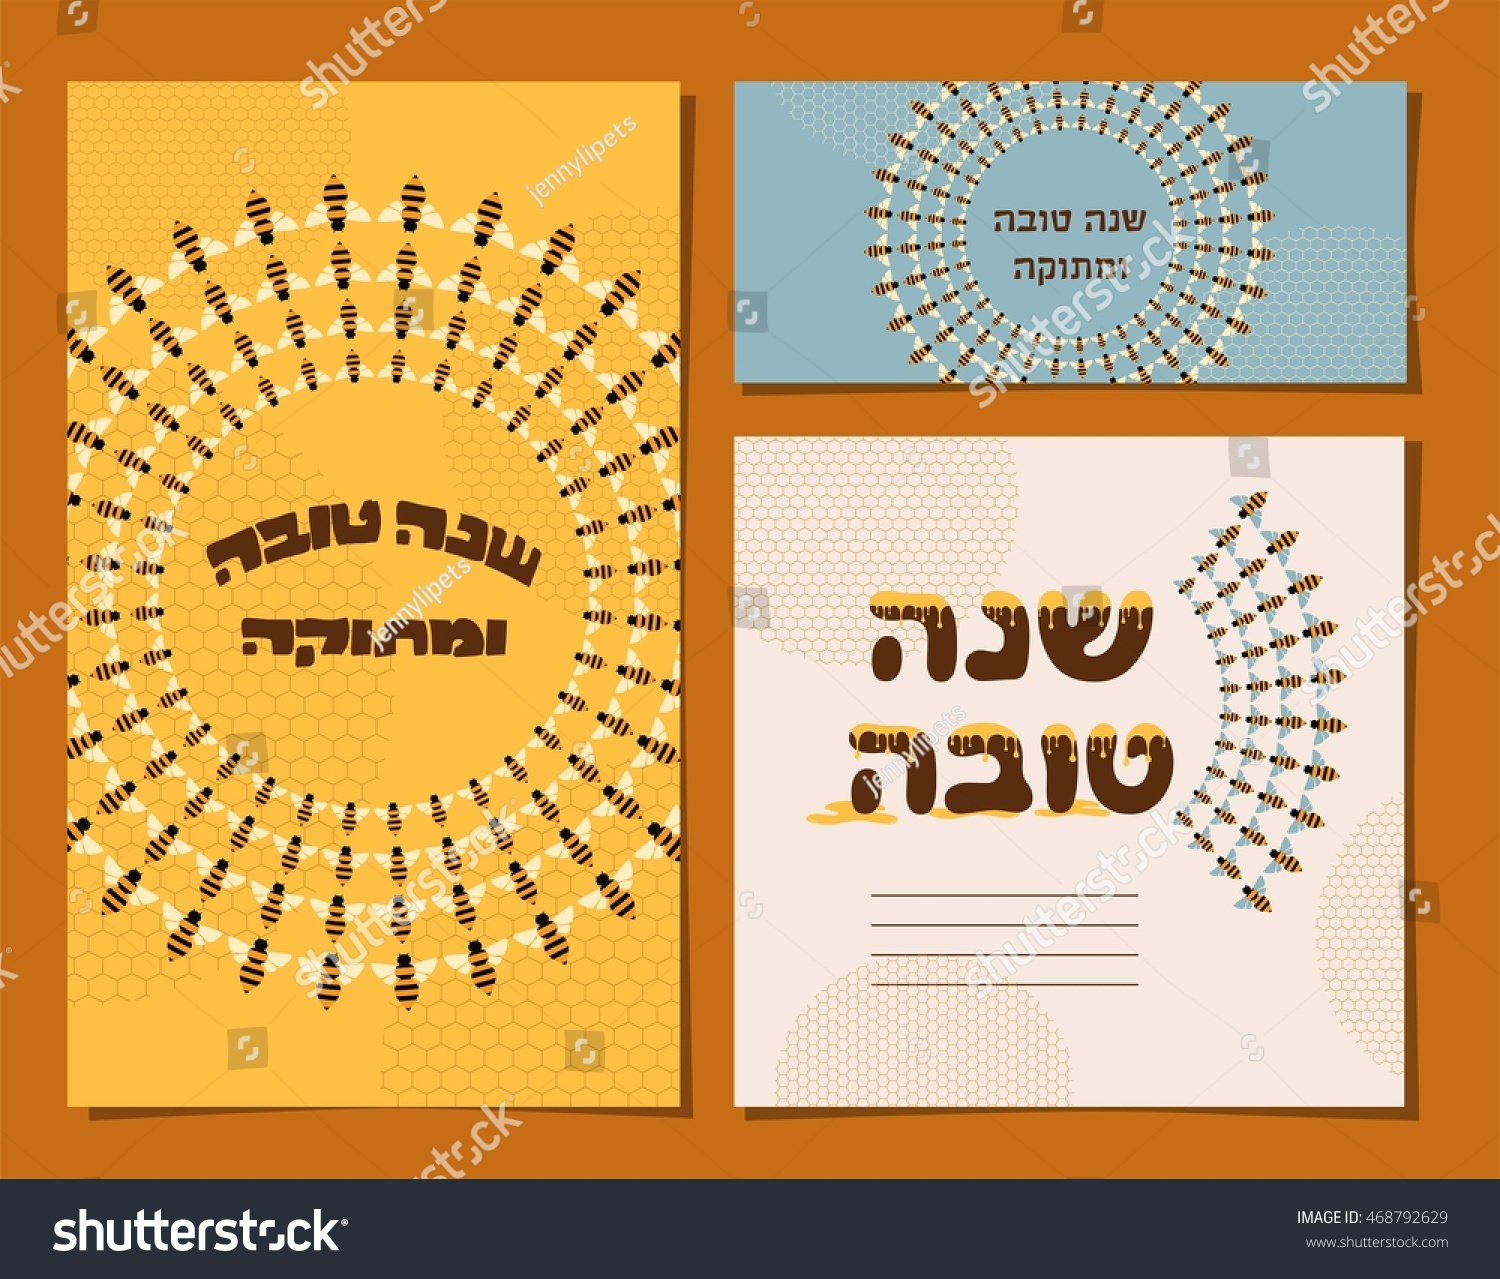 Card set jewish new year rosh stock vector 468792629 shutterstock card set for jewish new year rosh hashanah with traditional hebrew greetings kristyandbryce Choice Image